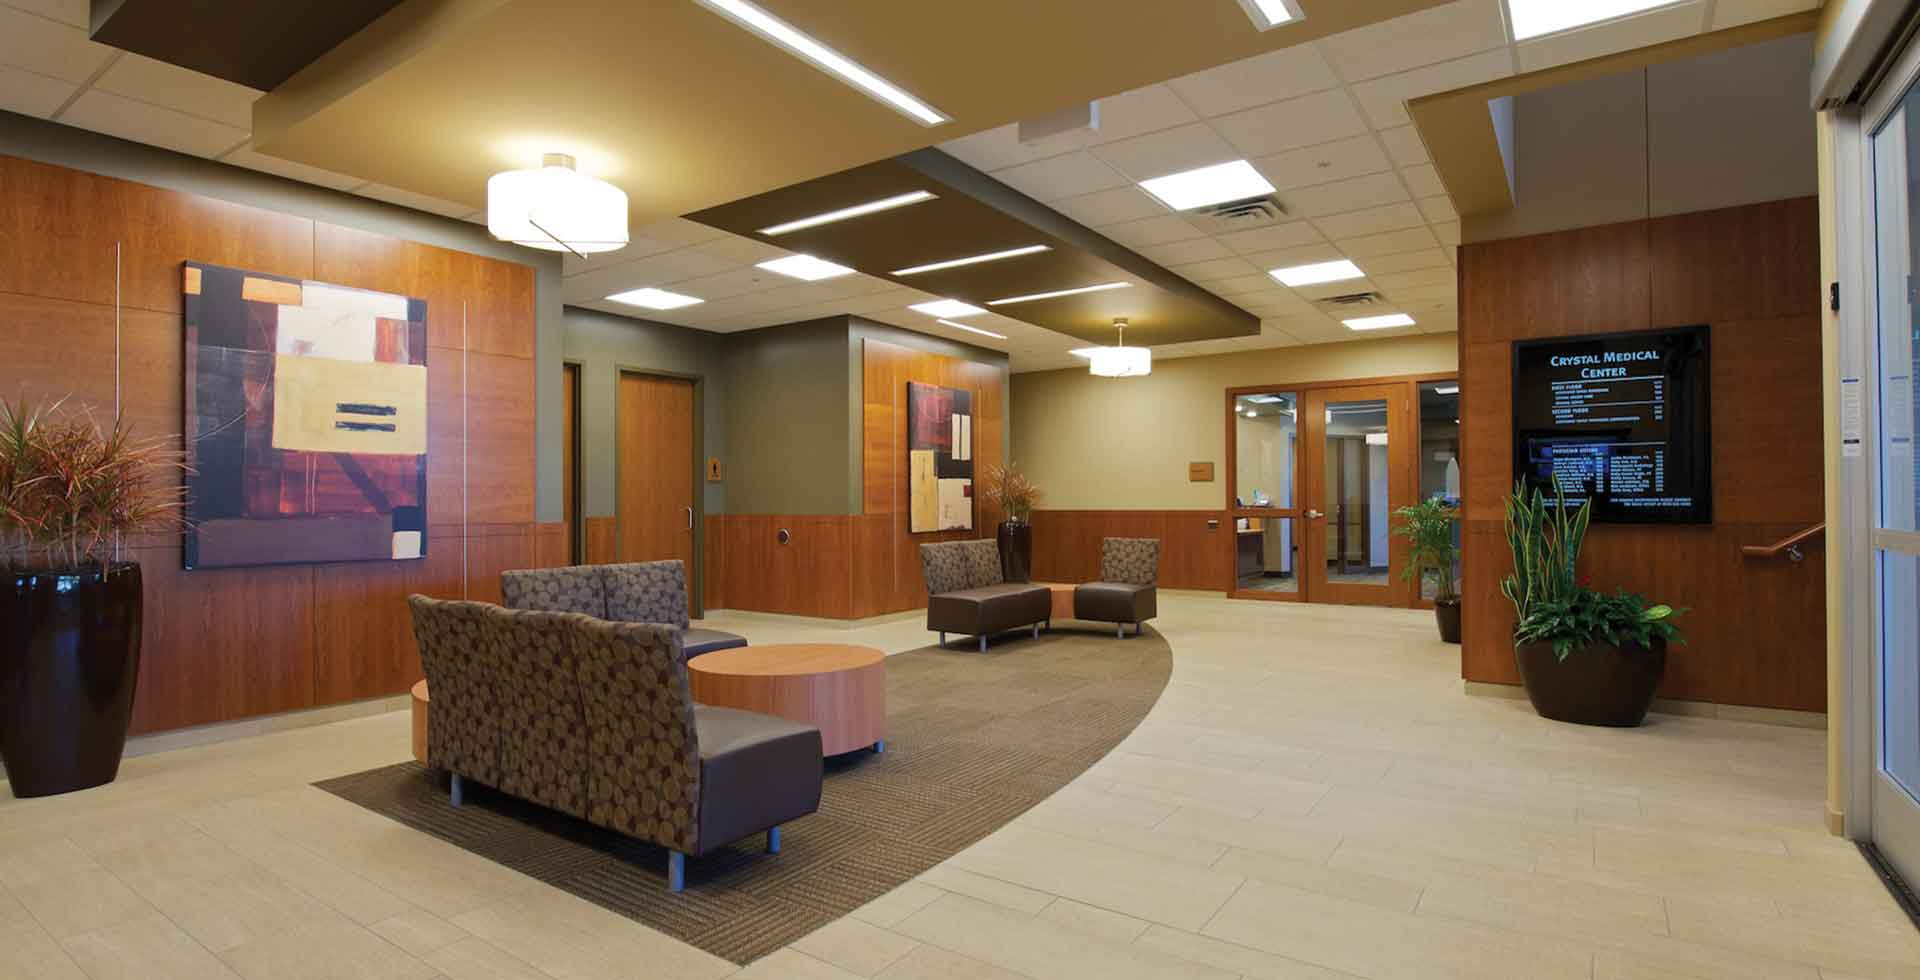 Crystal Medical Center Lobby - Crystal, MN